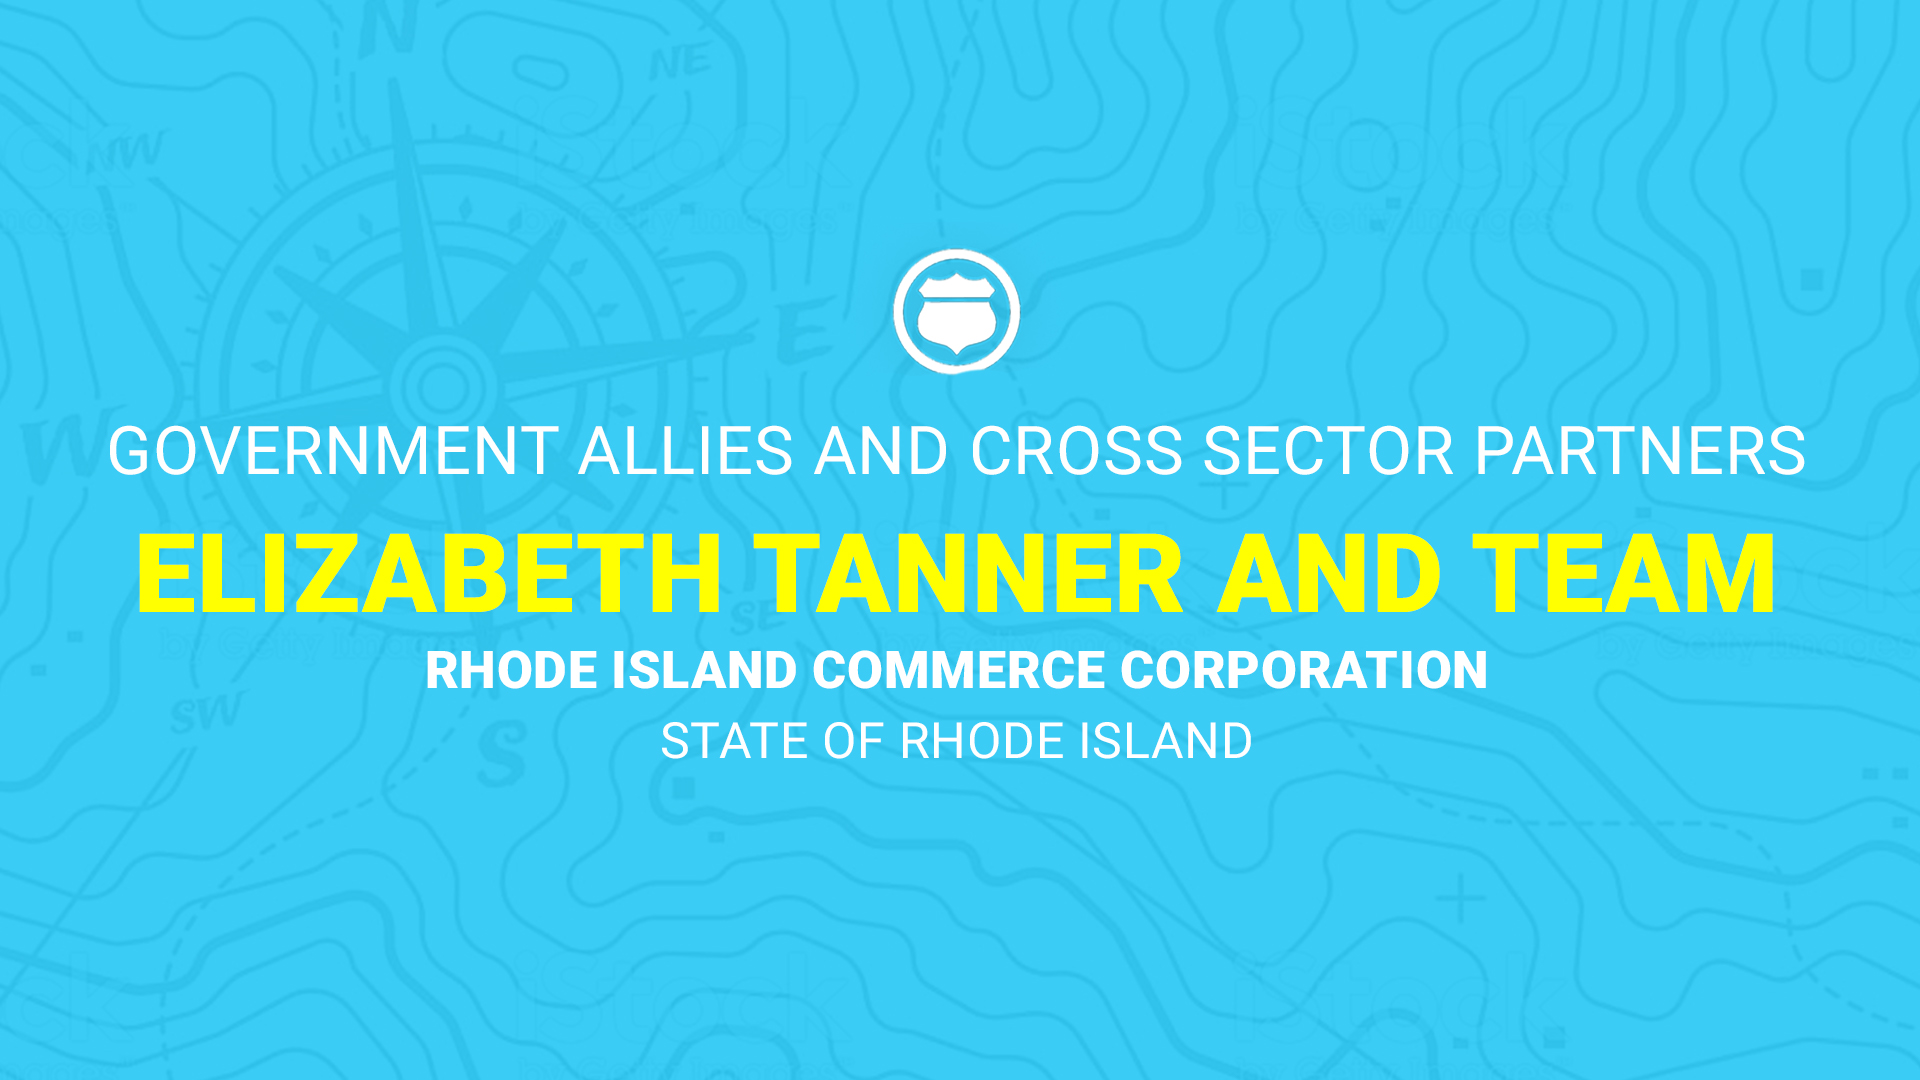 Finalists: Elizabeth Tanner and Team, Rhode Island Commerce Corporation, State of Rhode Island